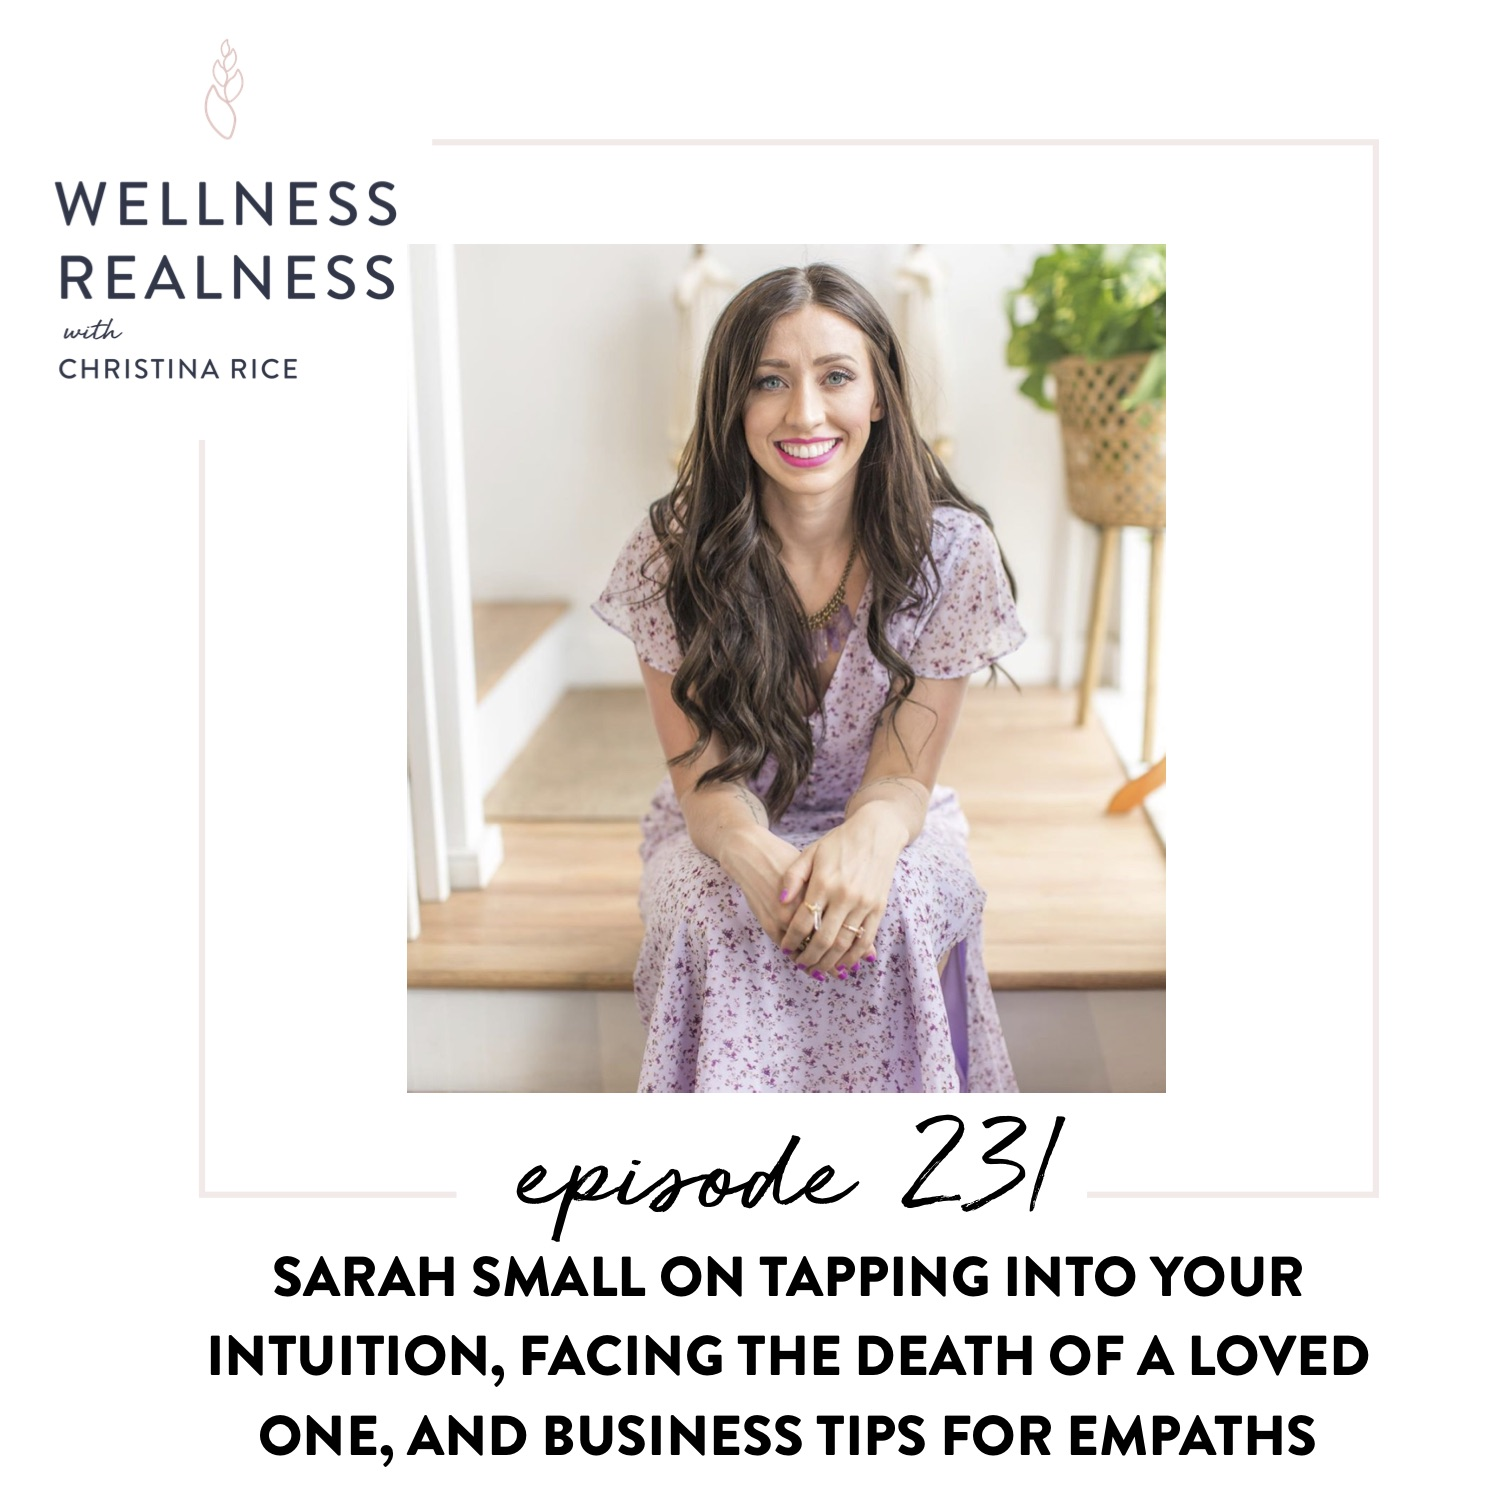 231: Sarah Small on Tapping into Your Intuition, Facing the Death of a Loved One, and Business Tips for Empaths